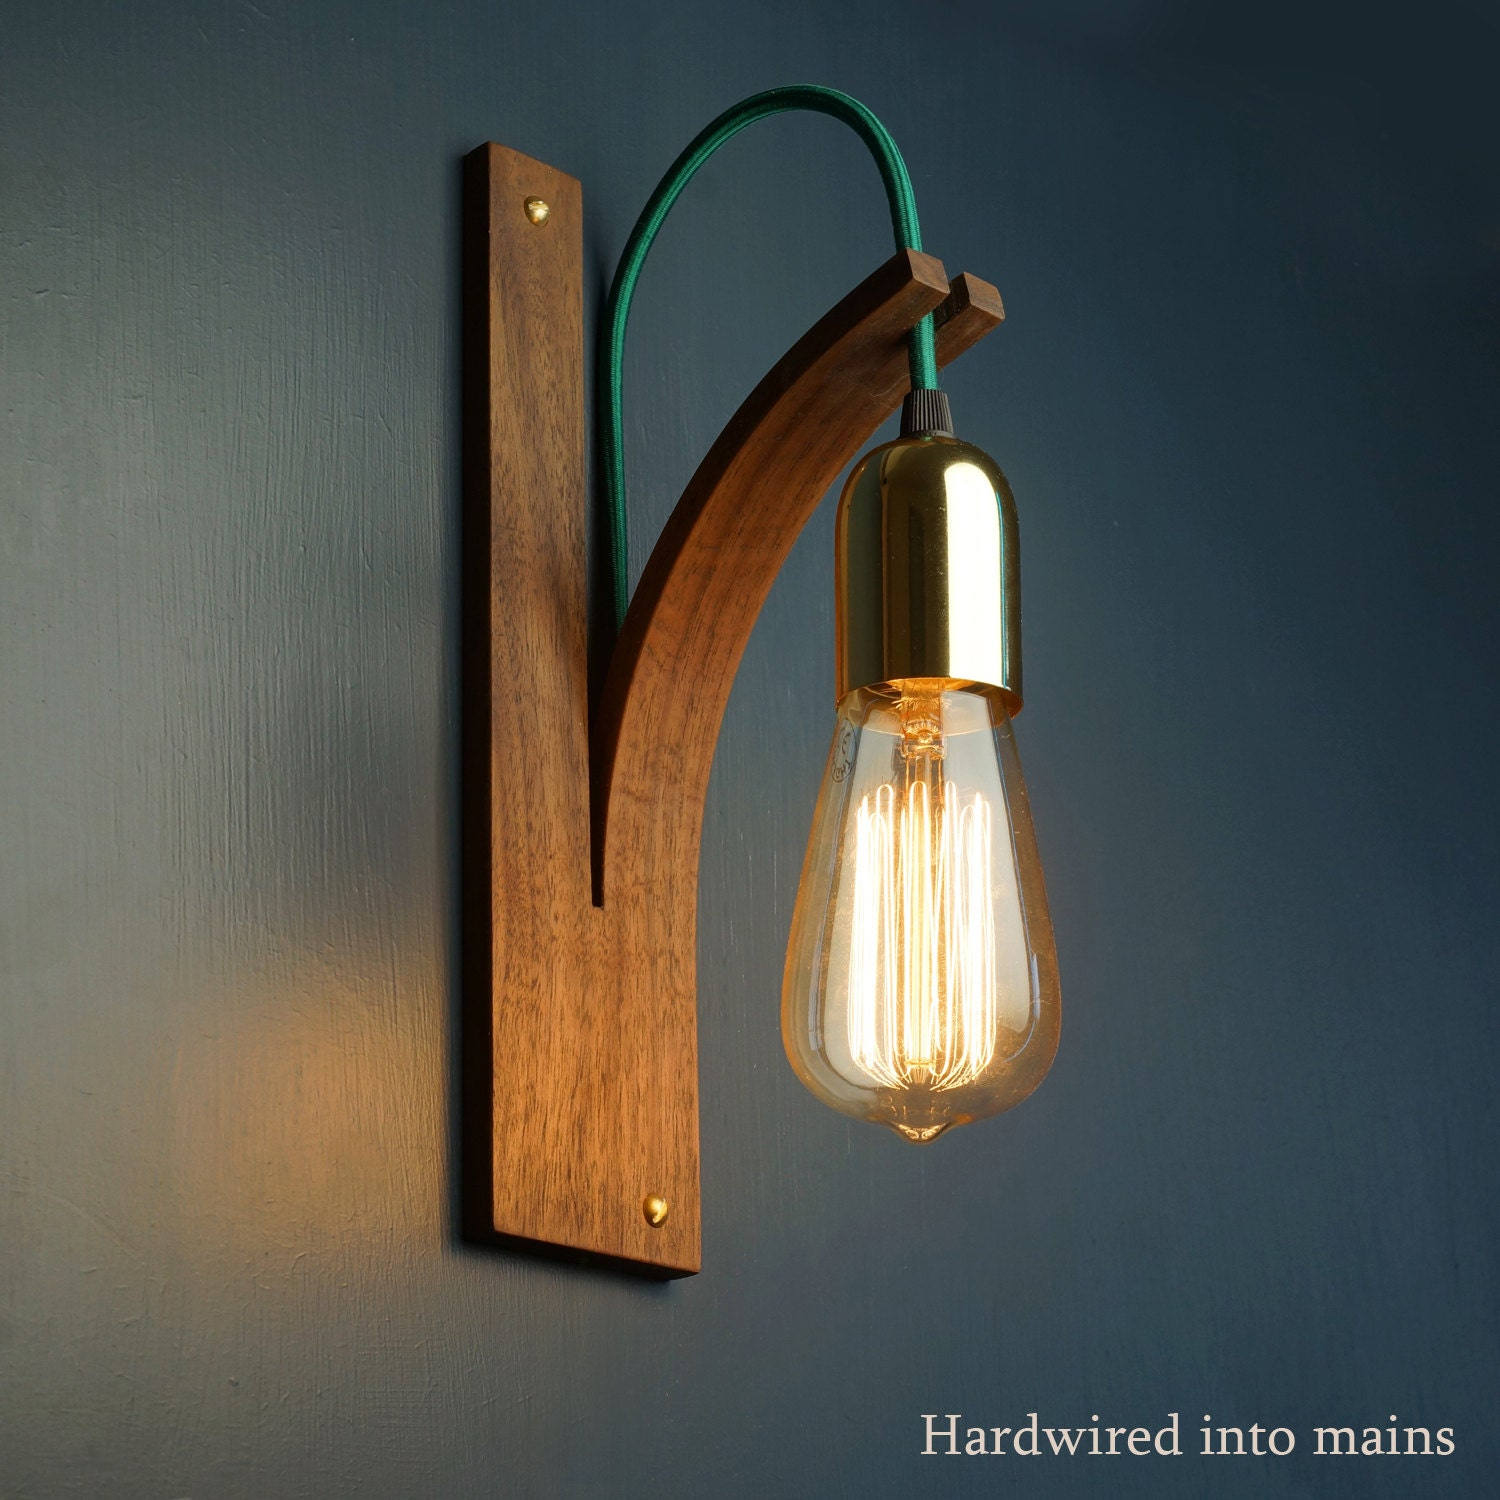 American Walnut Bracket Wall Light HARDWIRED TO MAINS